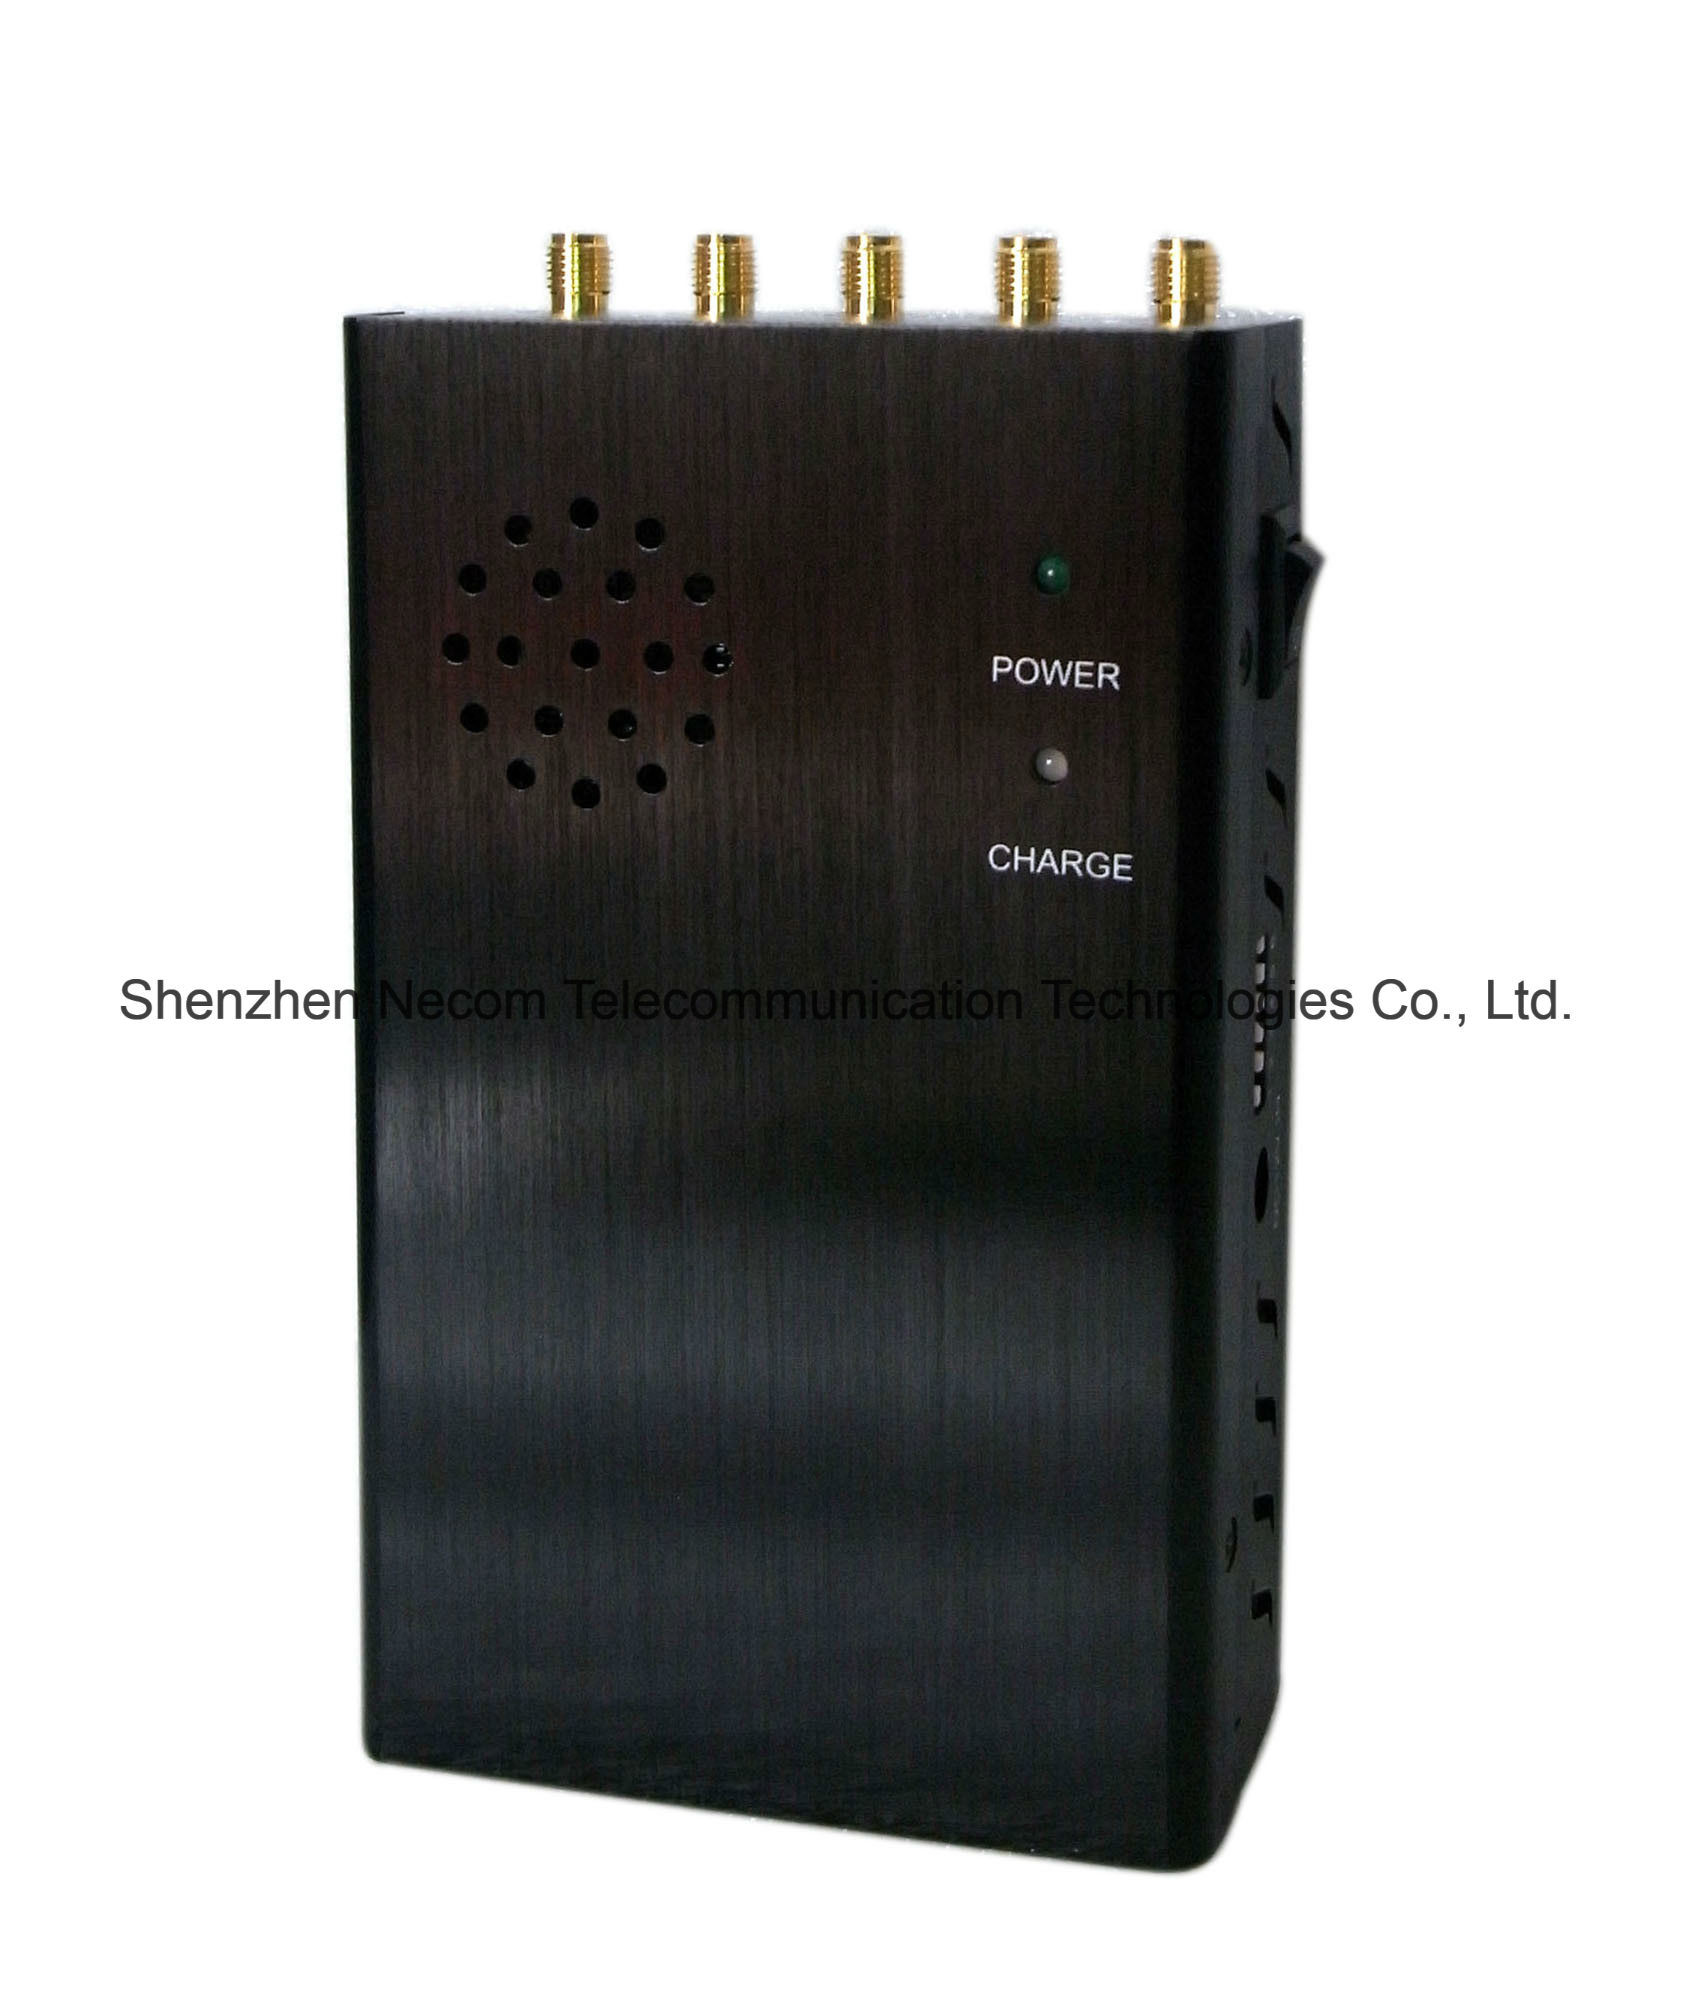 mobile phones in uk - China Wireless Signal Jammer with Good Quality&Favourable Price Jamming for Wired Camera, GPS Tracker, Mobile Phones, GSM Jammer/GPS Jammer /Cell Phone Jammer - China 5 Band Signal Blockers, Five Antennas Jammers